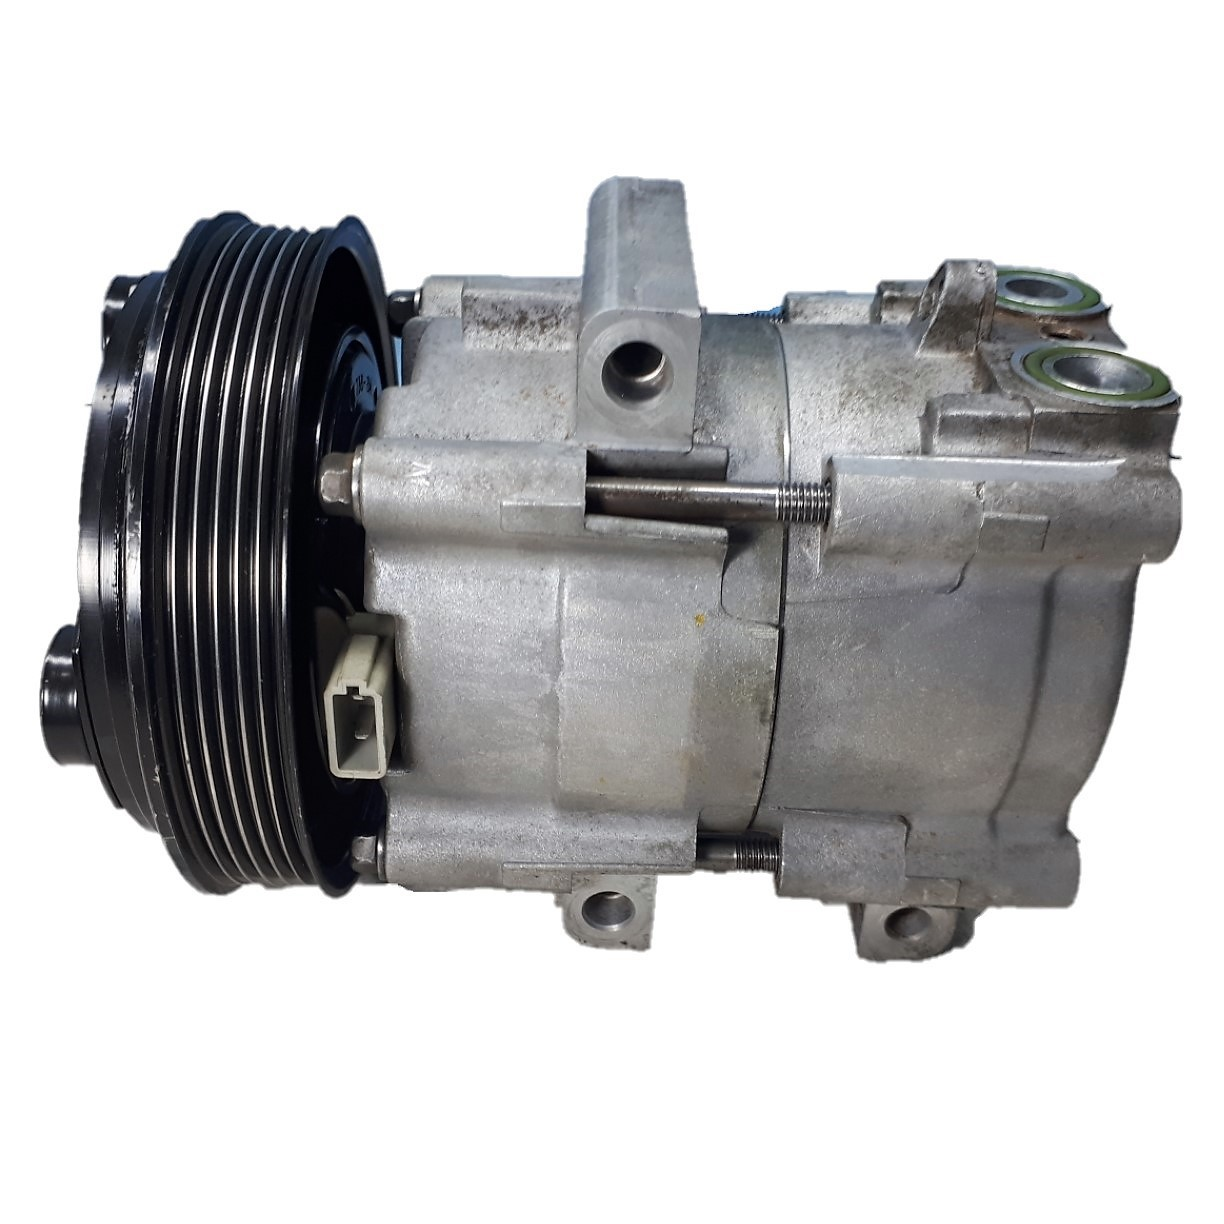 Compressor Ar Condicionado Ford Fiesta Street 99...04, Ka 99...07, Courrier 99...02, Focus 03...08 1.6